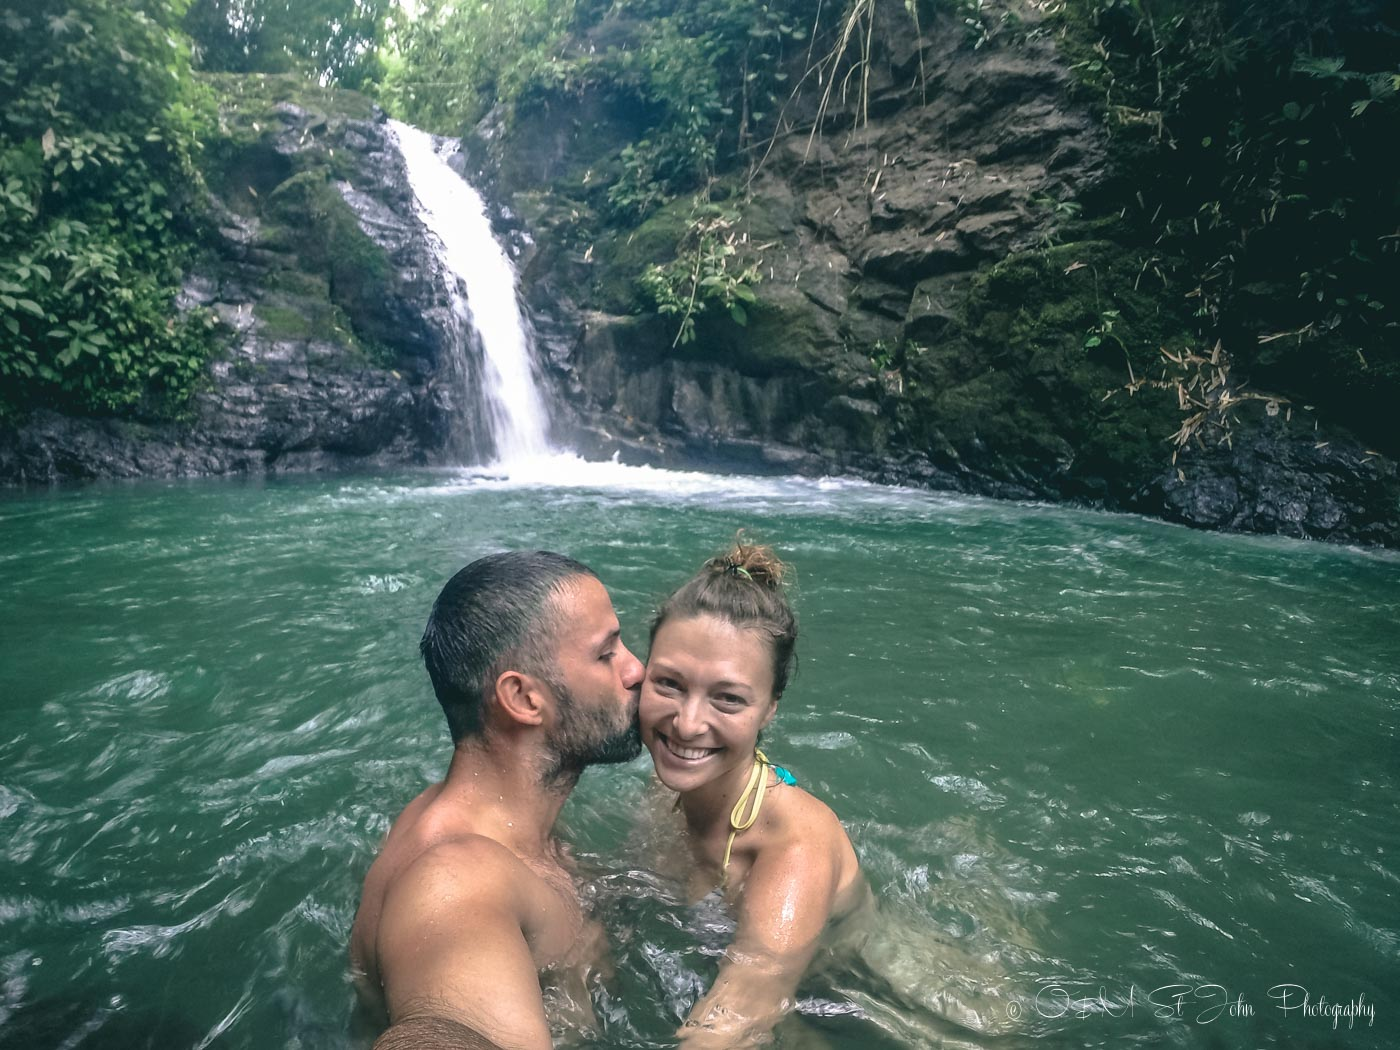 Max & Oksana at Uvita Waterfall in Uvita, Puntarenas, Costa Rica